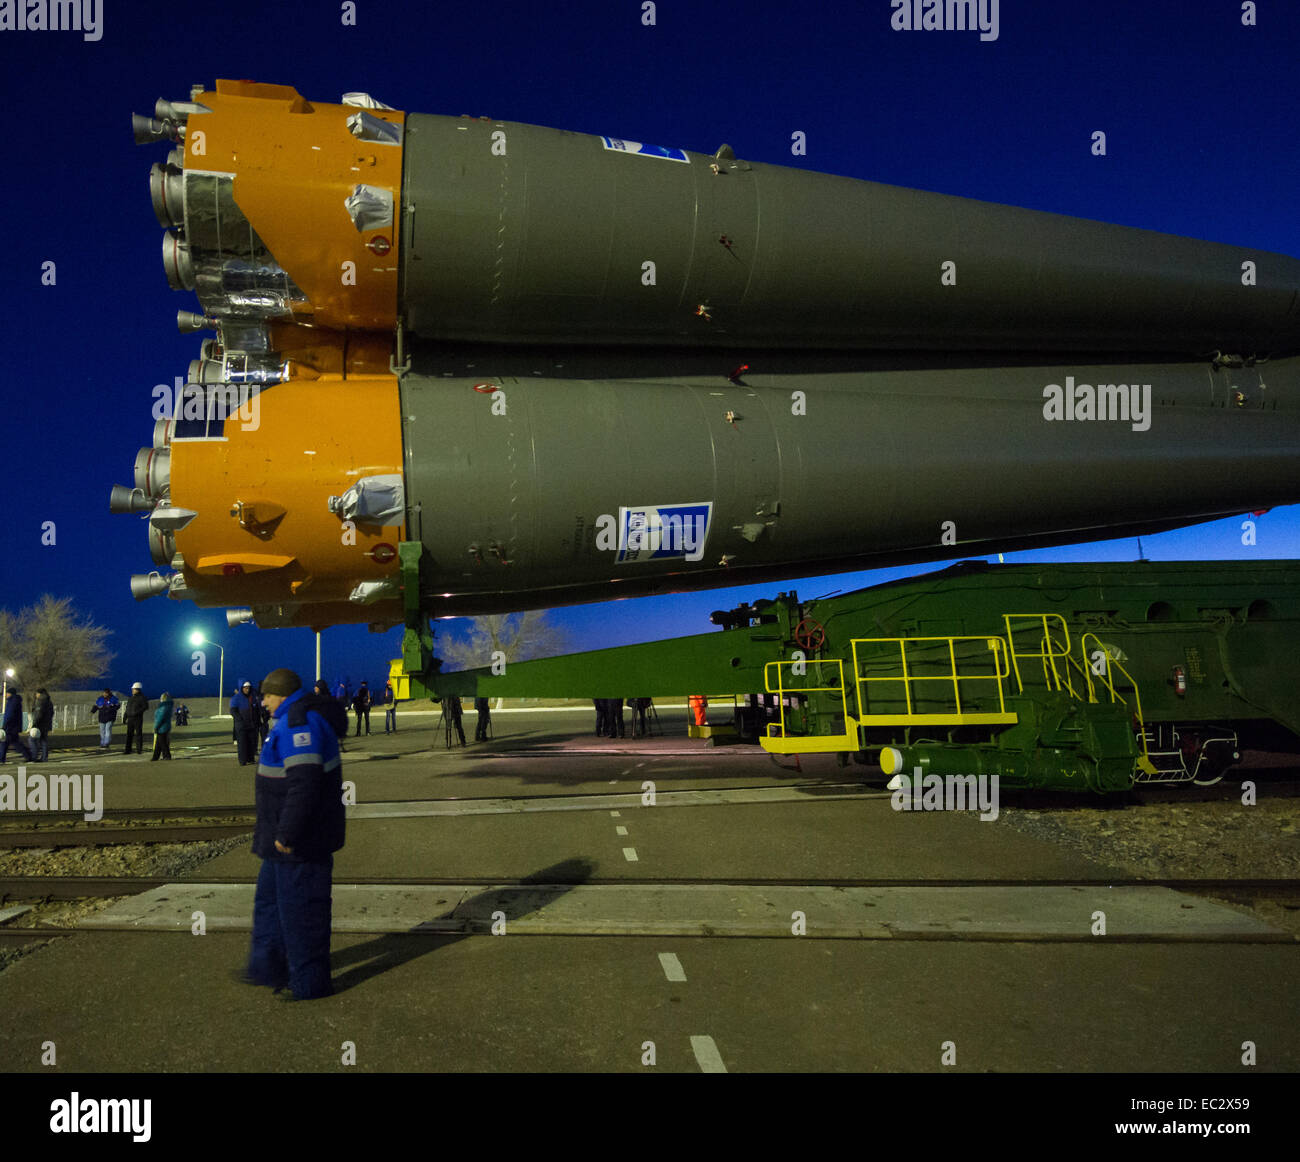 The Soyuz TMA-15M spacecraft is rolled out to the launch pad by train on Friday, Nov. 21, 2014 at the Baikonur Cosmodrome - Stock Image